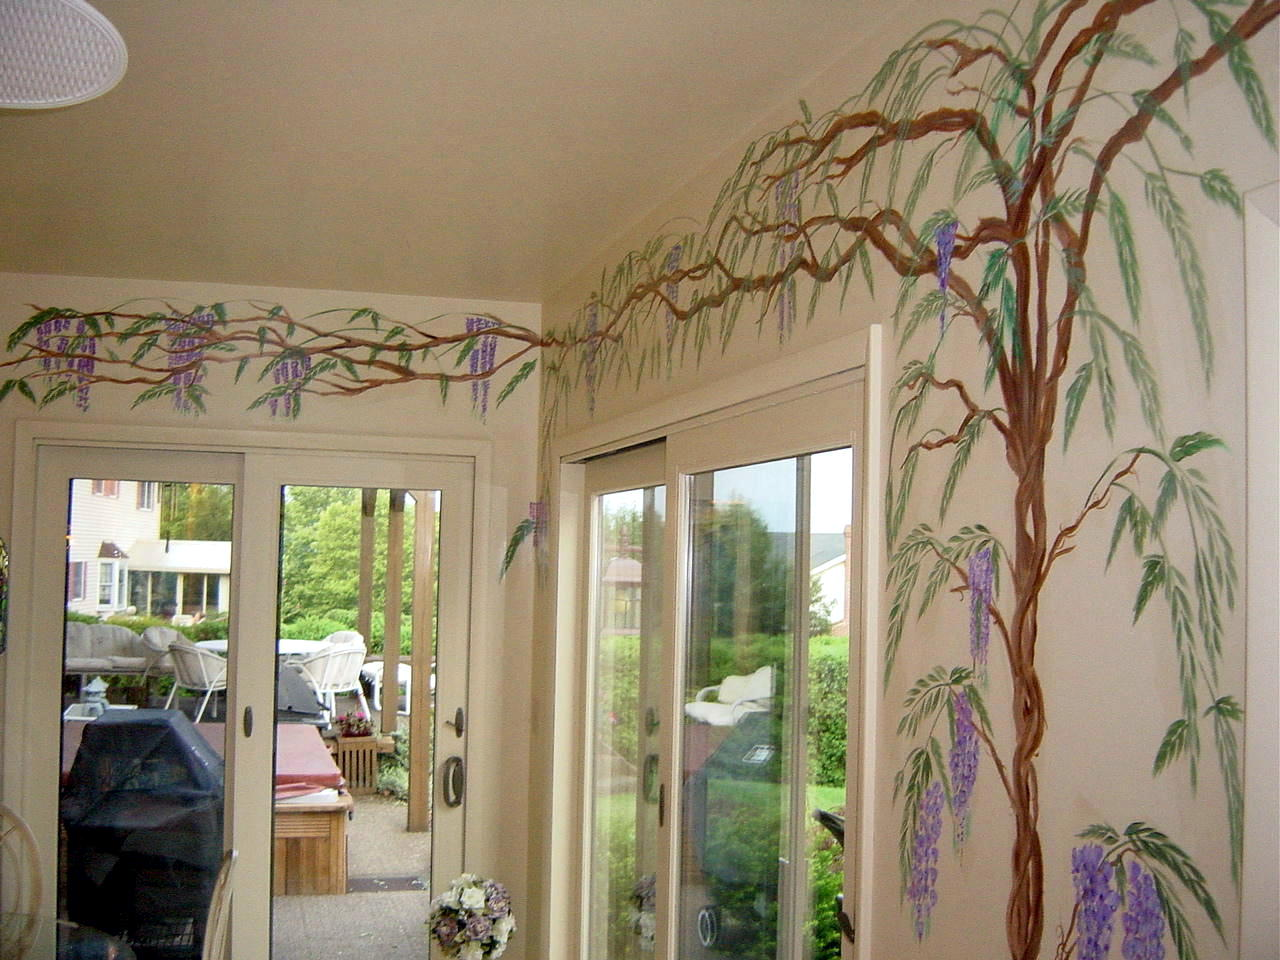 Interior wisteria tree in Pennsylvania